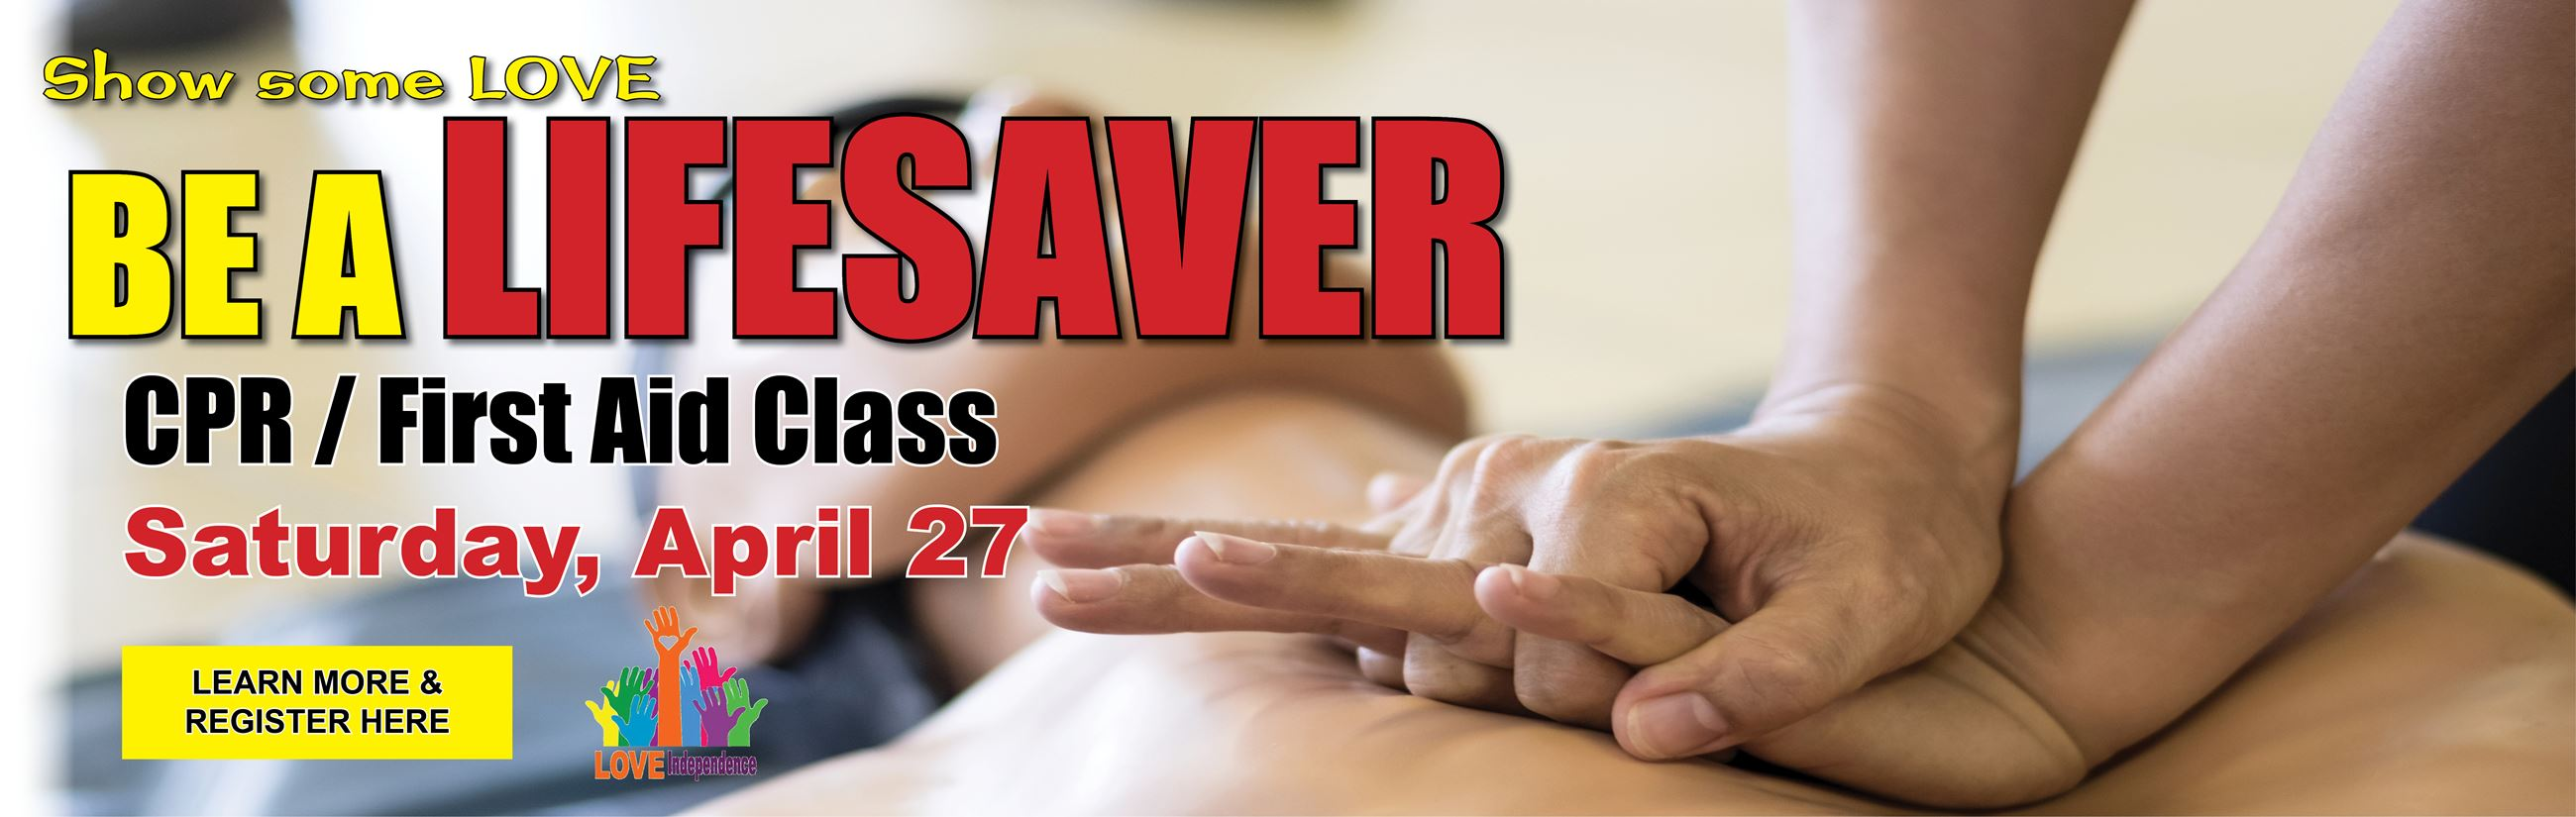 City of Indy CPR Class Web Banner 04.27.2019